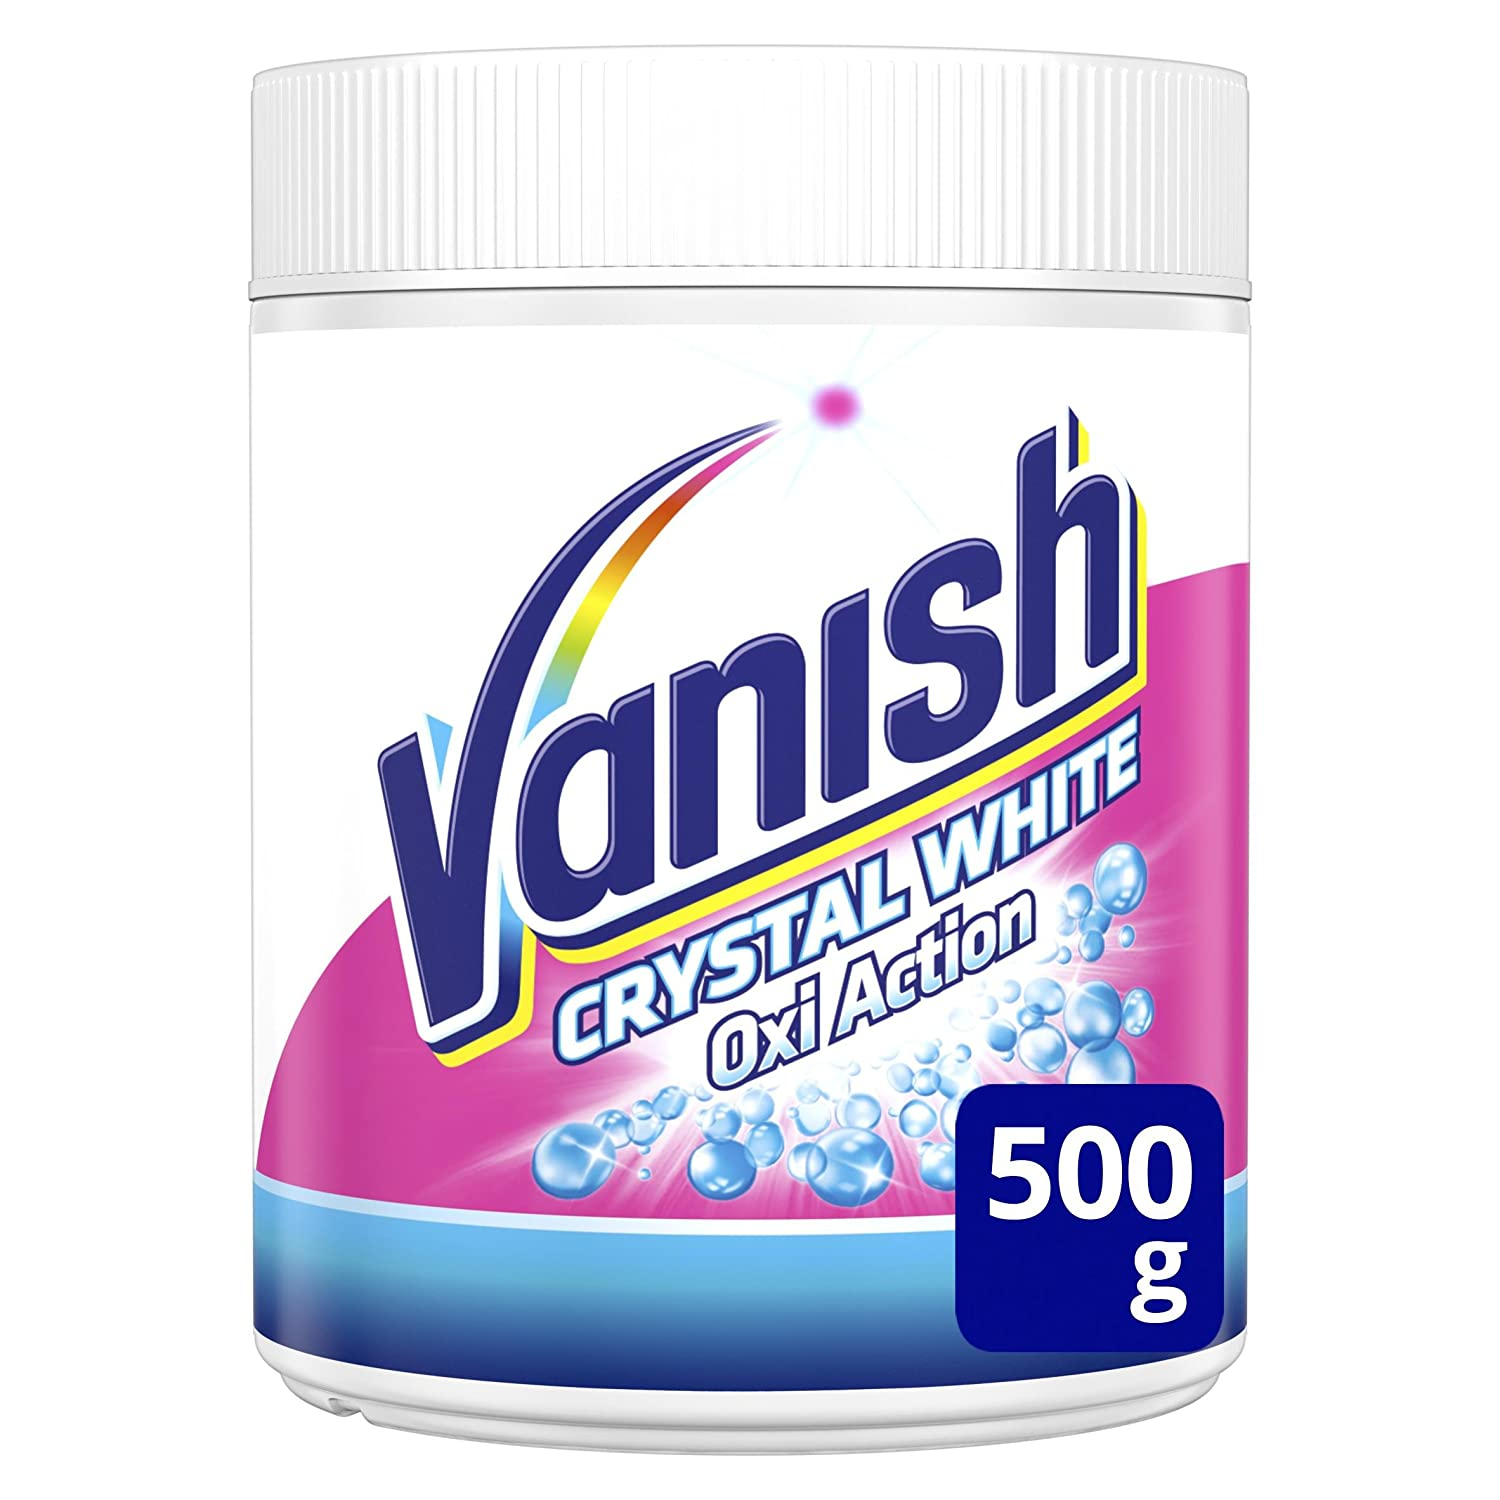 Vanish Quitamanchas Oxi Action Polvo y Gel · Vanish Quitamanchas Oxi Action Gold Polvo y Gel · Vanish Quitamanchas Oxi Action White Polvo y Gel ...